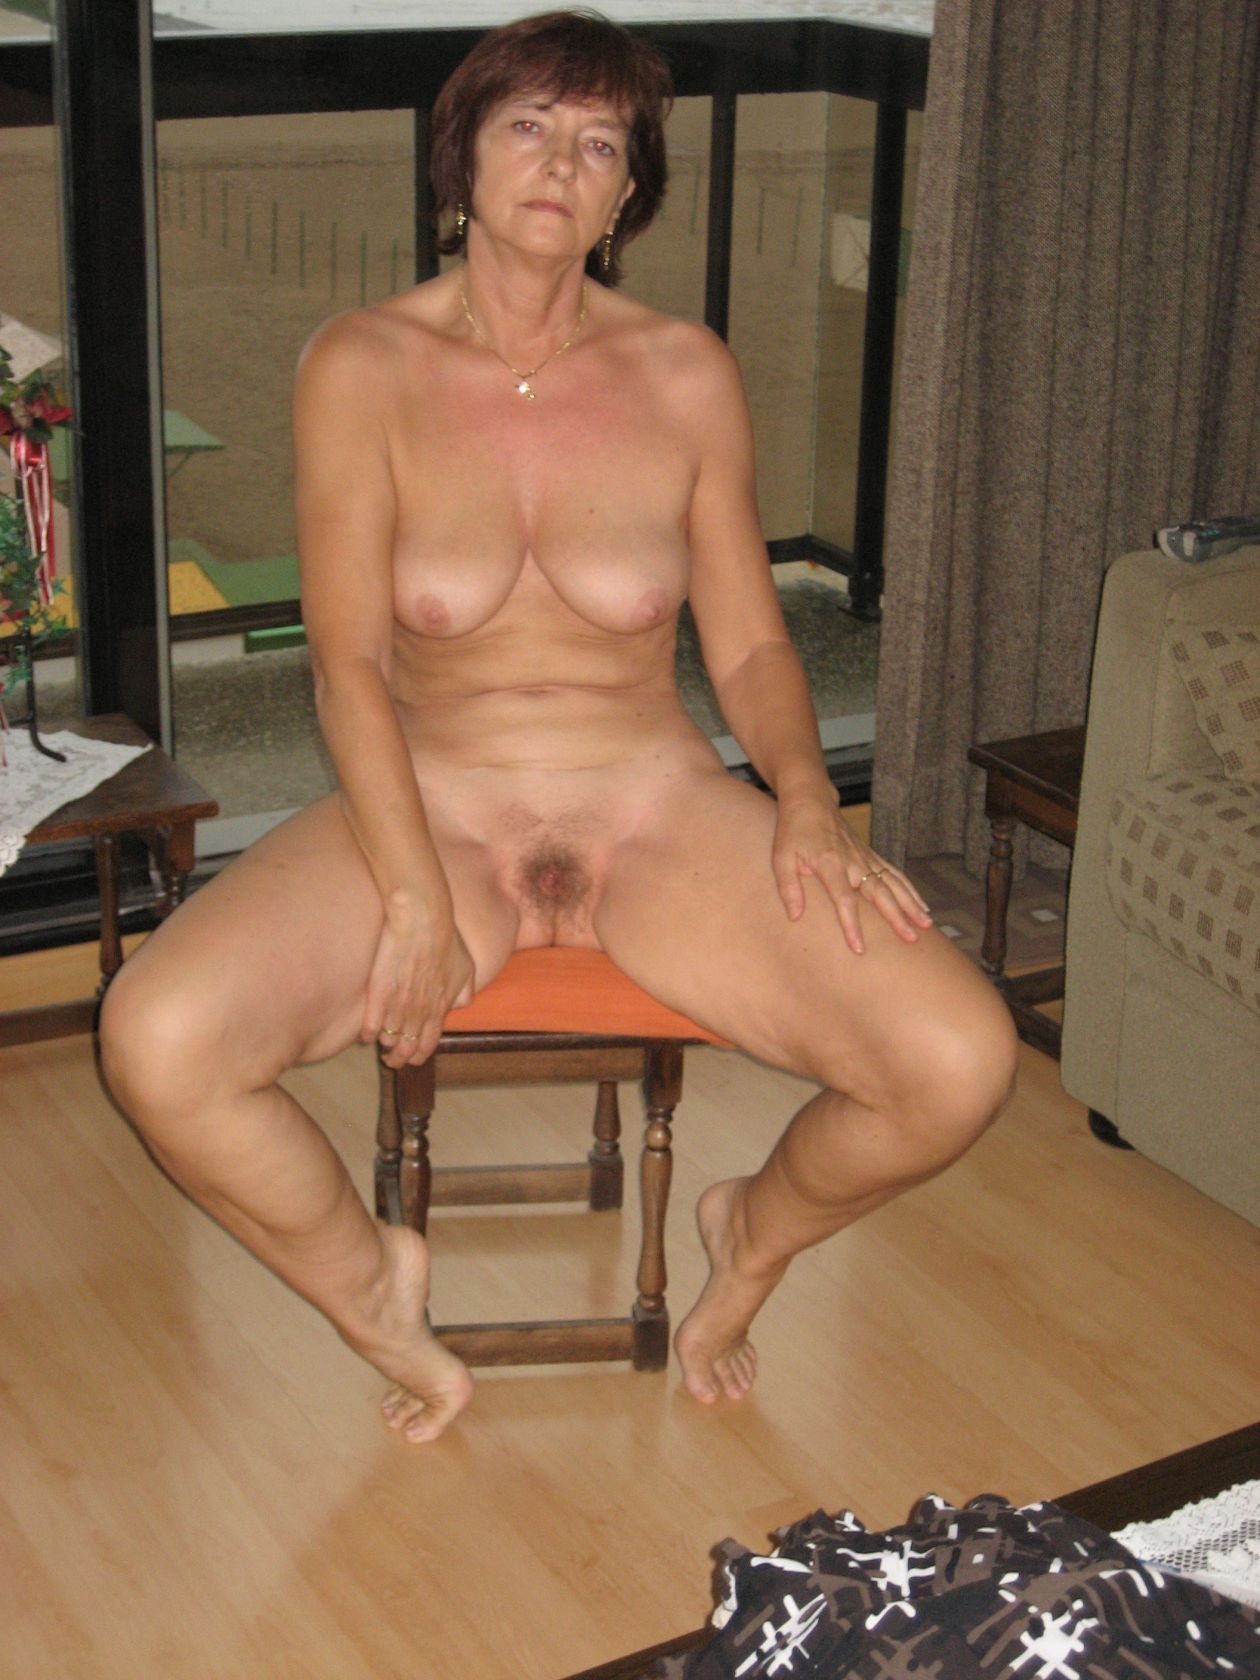 Amature Mom Porn old nude pics of my mom . top porn images. comments: 1